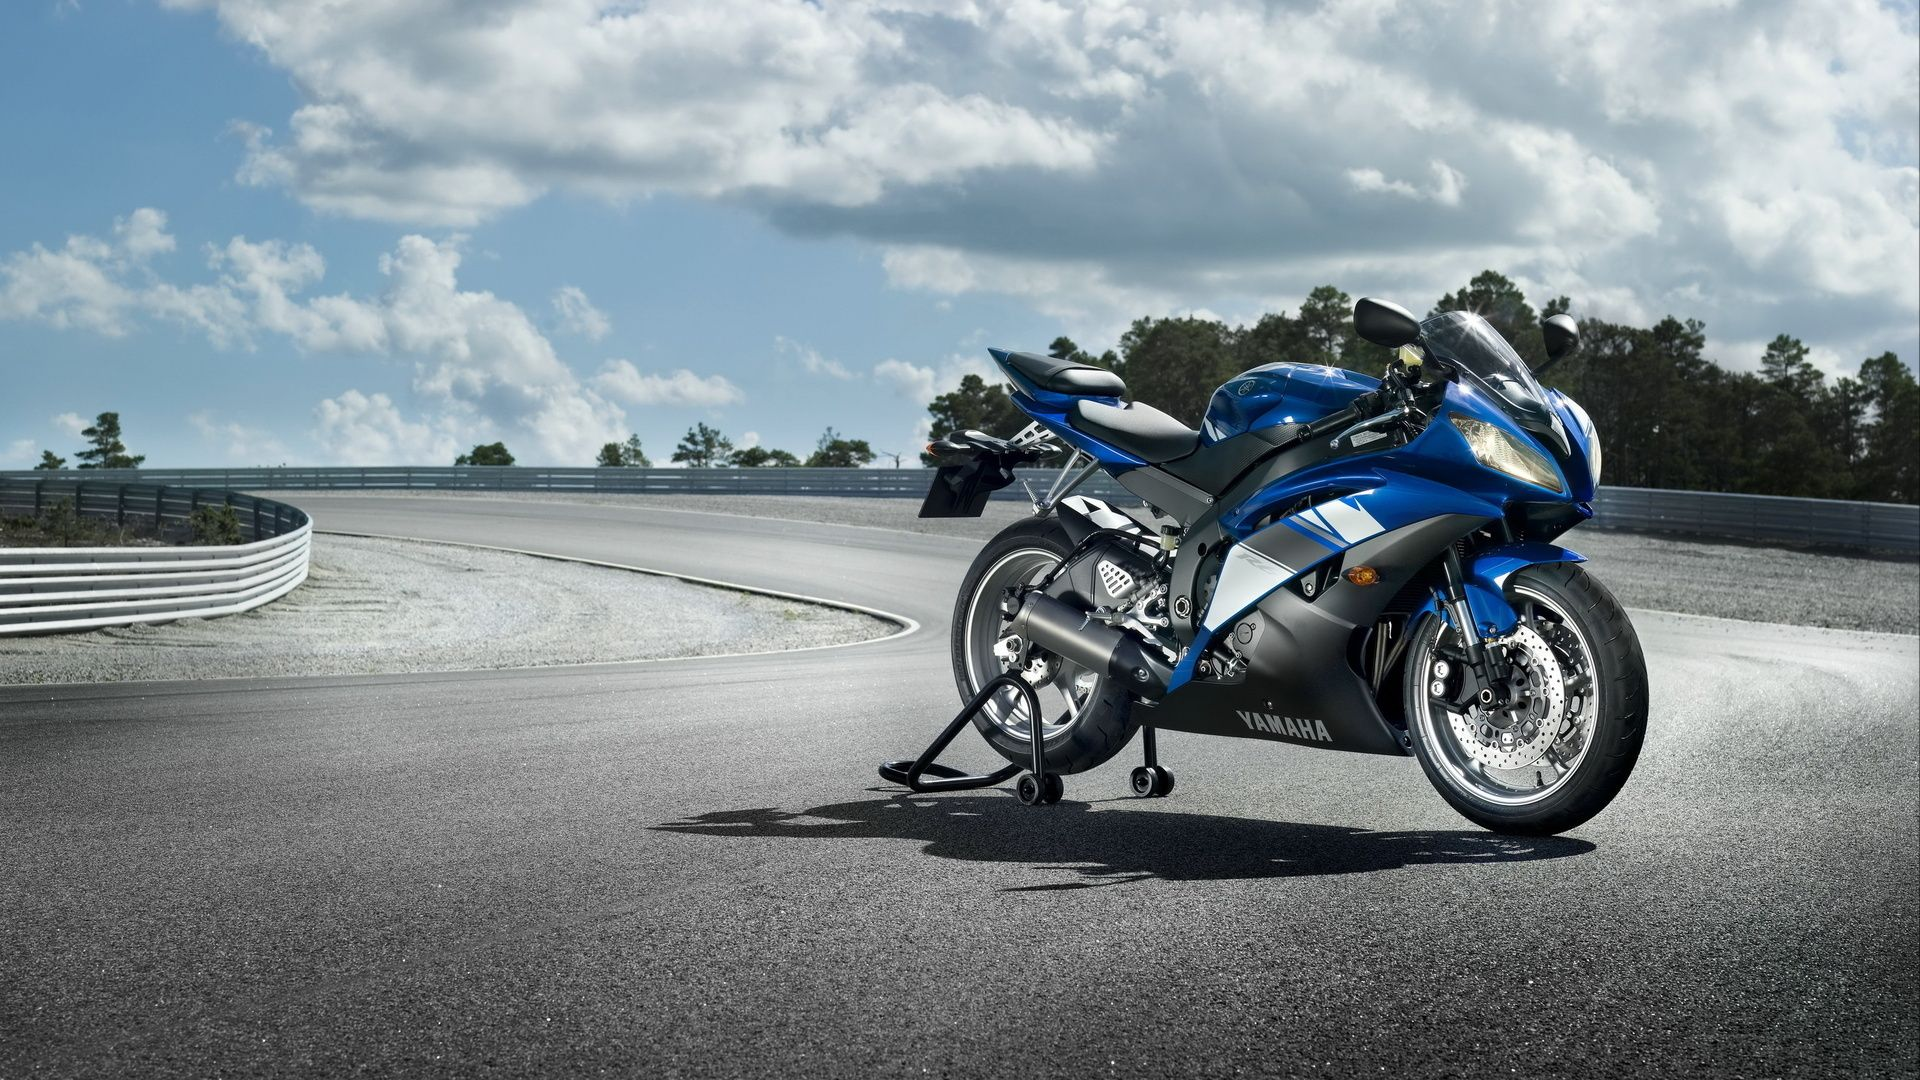 Yamaha Bike Wallpapers : Get Free Top Quality Yamaha Bike